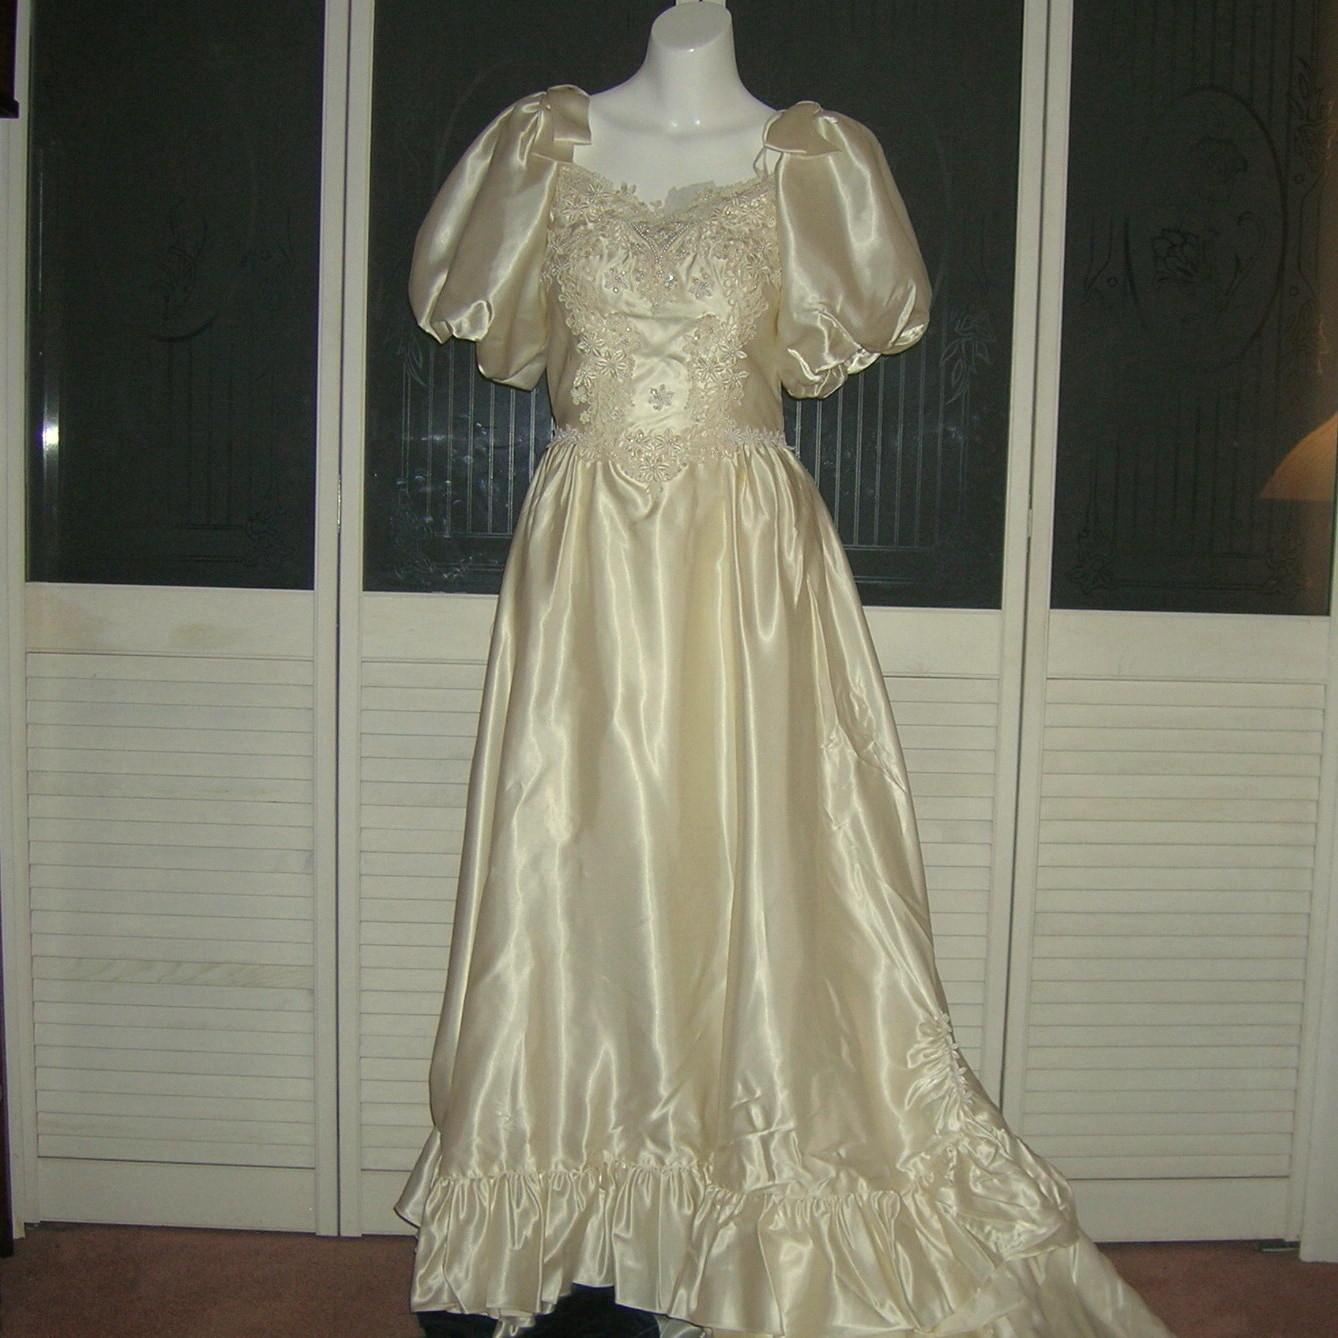 Vintage Liquid Satin Cinderella Bridal Gown Wedding Dress. Long Sleeve Wedding Dresses For Older Brides. Black Wedding Dresses Vera Wang. Cotton Wedding Dresses With Pockets. Pink Wedding Dresses Vera Wang. Corset Bras For Wedding Dresses Plus Size. Corset Wedding Dresses Australia. Tea Length Wedding Dress For Sale Australia. Hippie Wedding Dresses Nz